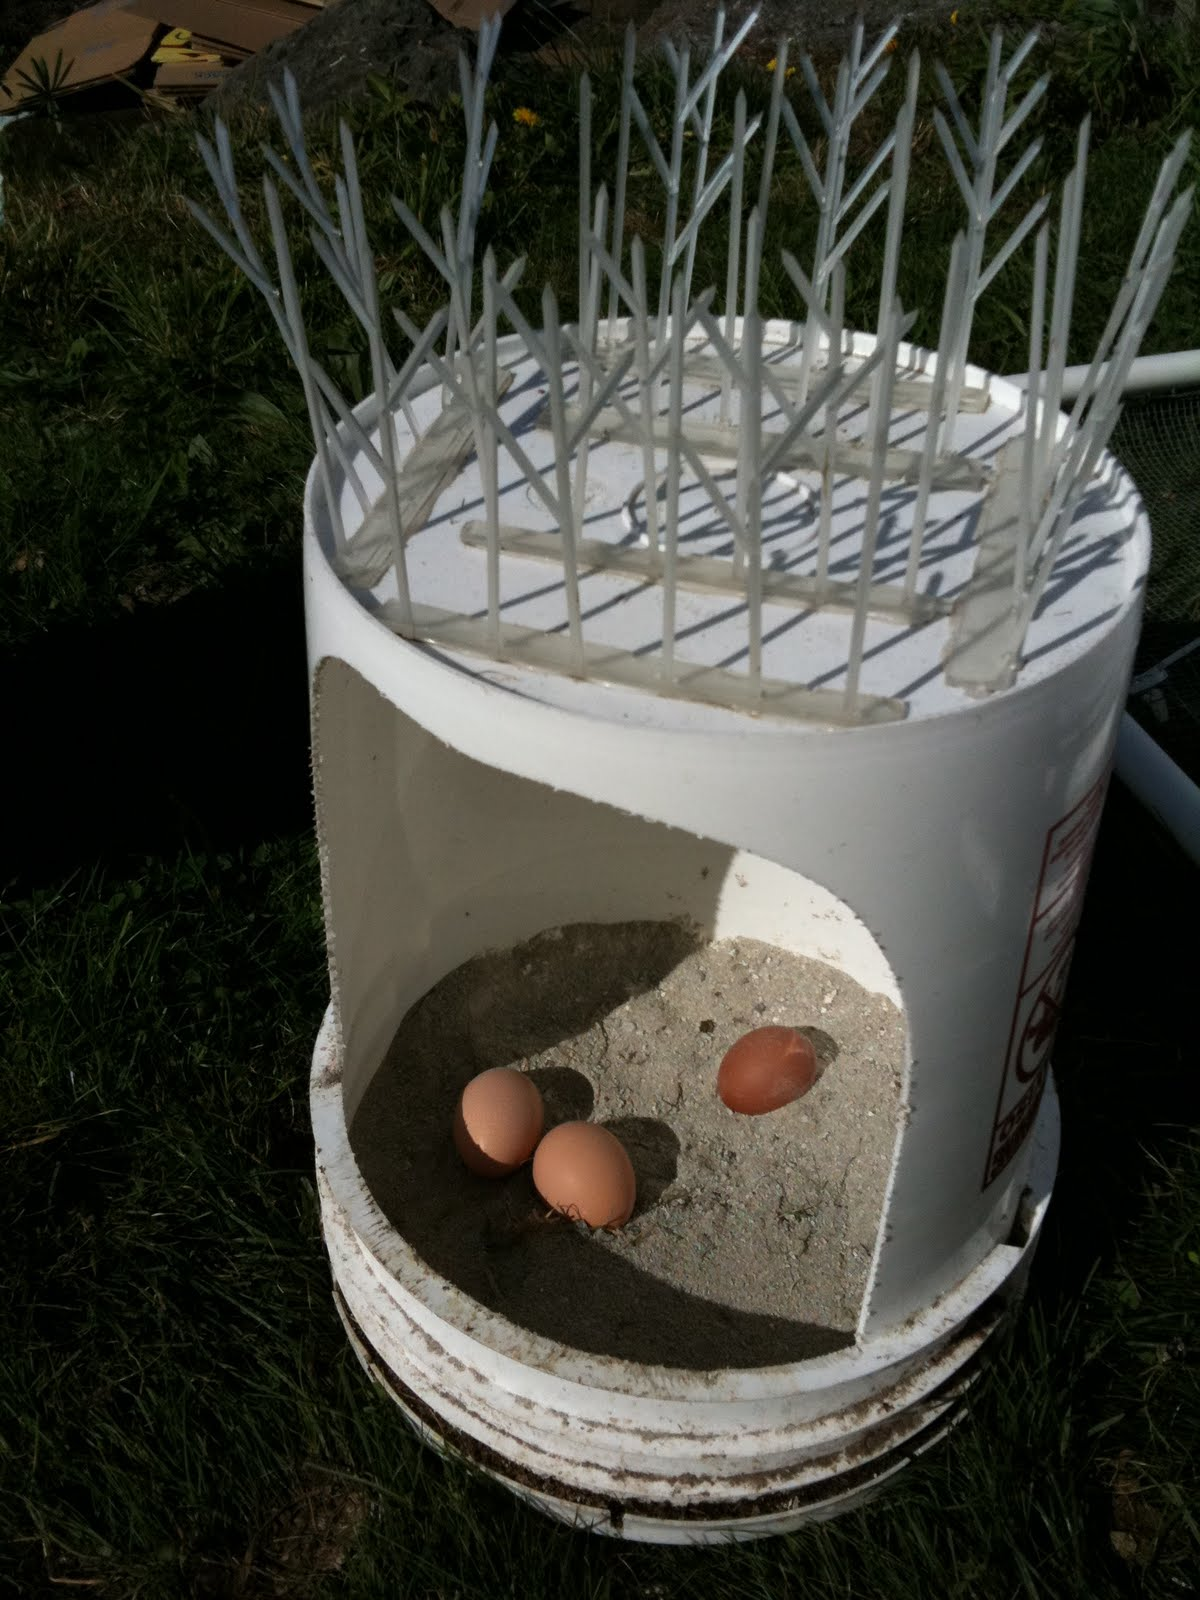 Portable chicken coop opt out en masse